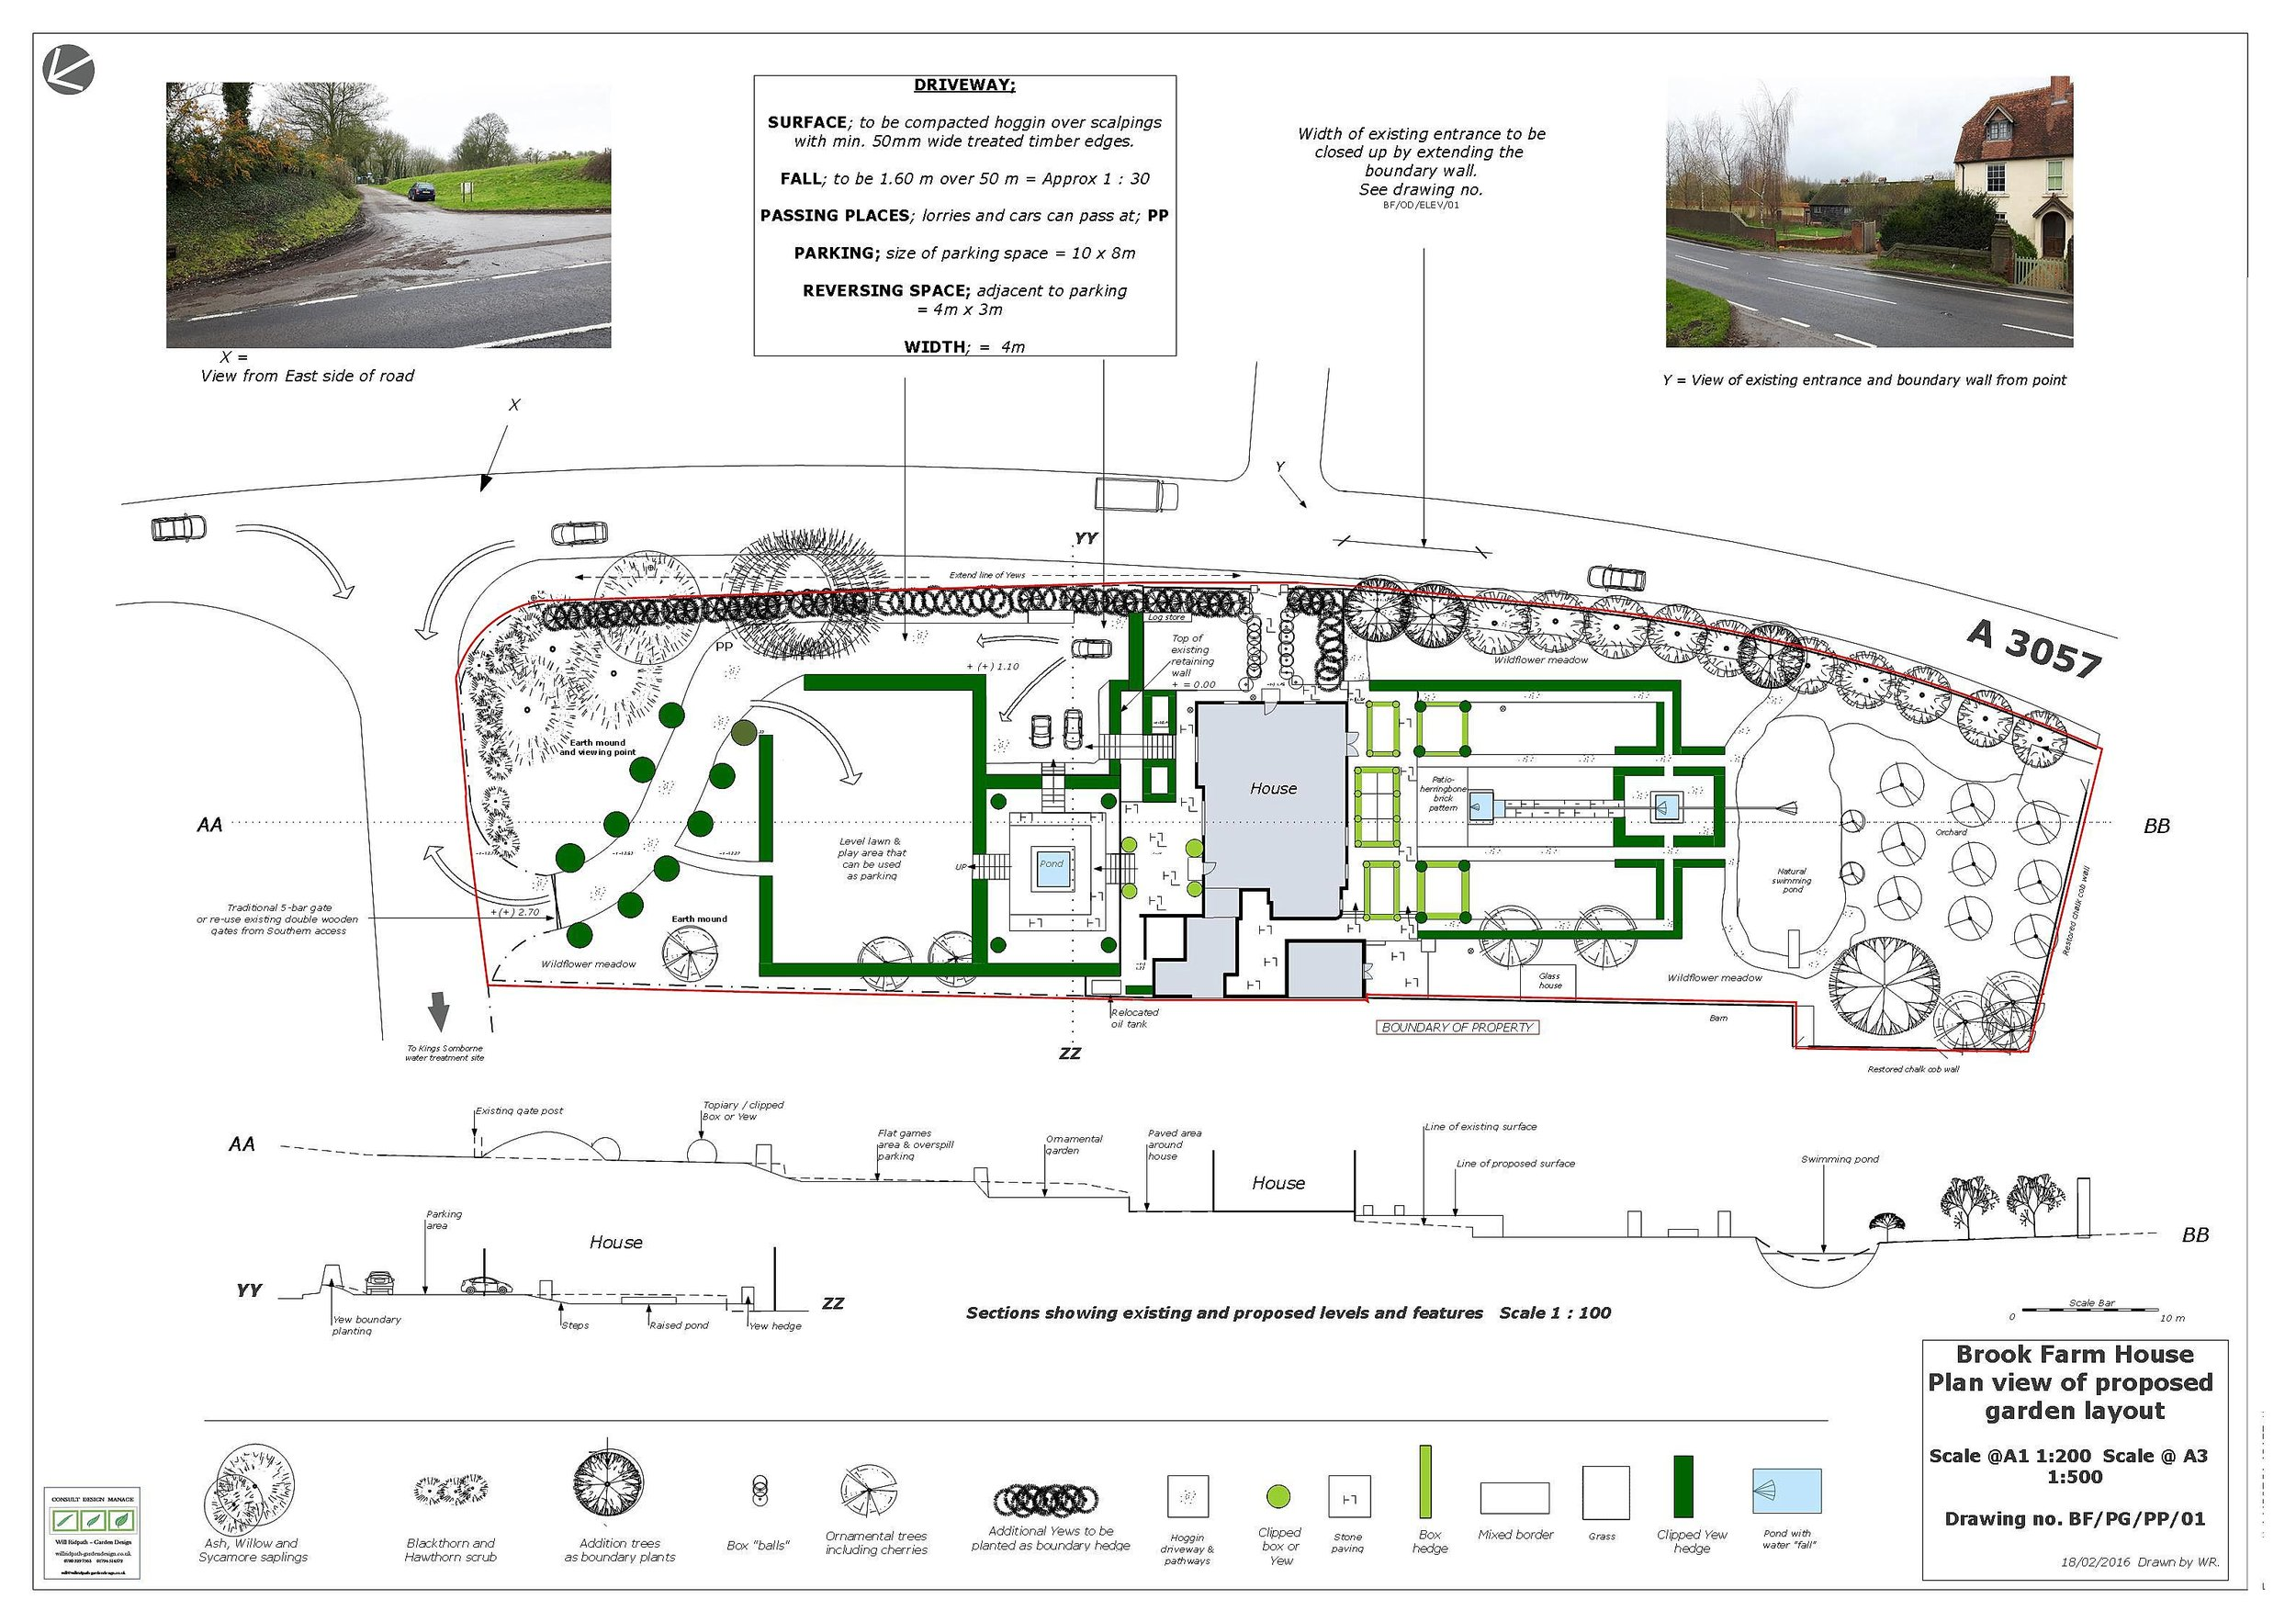 Plan view of proposed garden layout Brook Farm 5_2.jpg